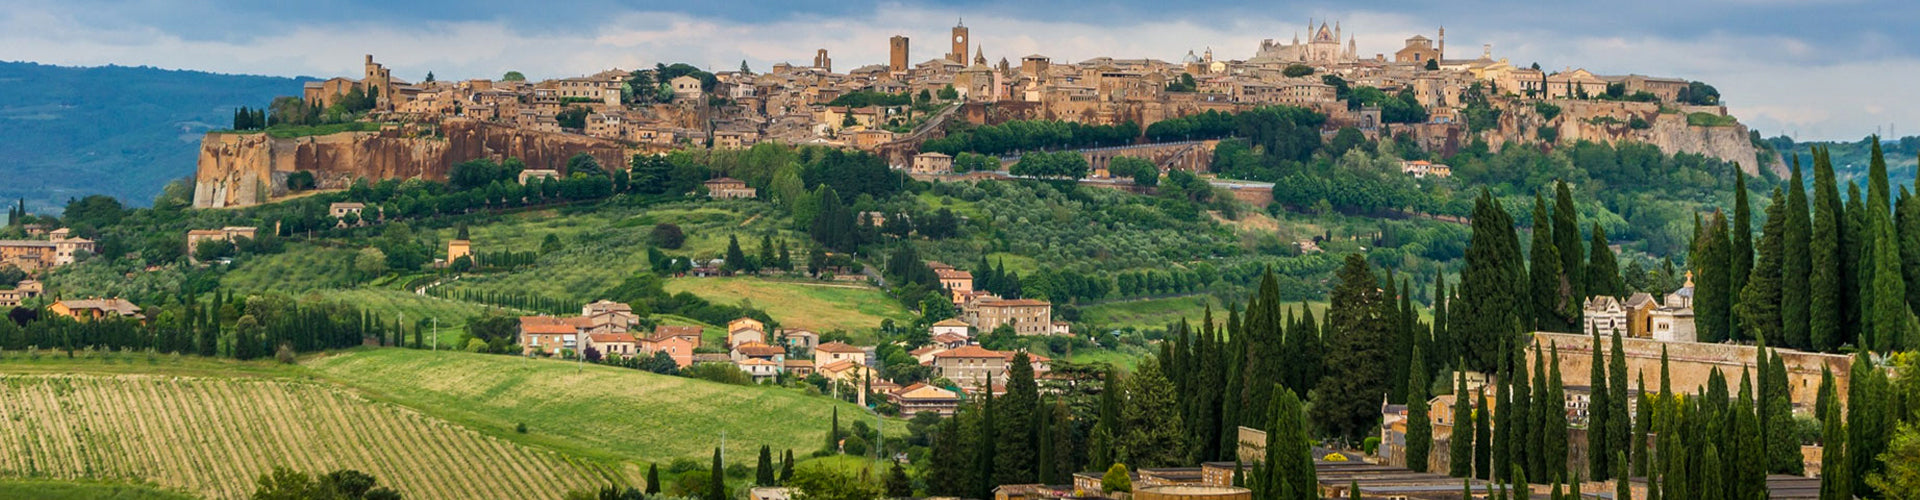 Panoramic View of the medieval town, Orvieto, in Umbria